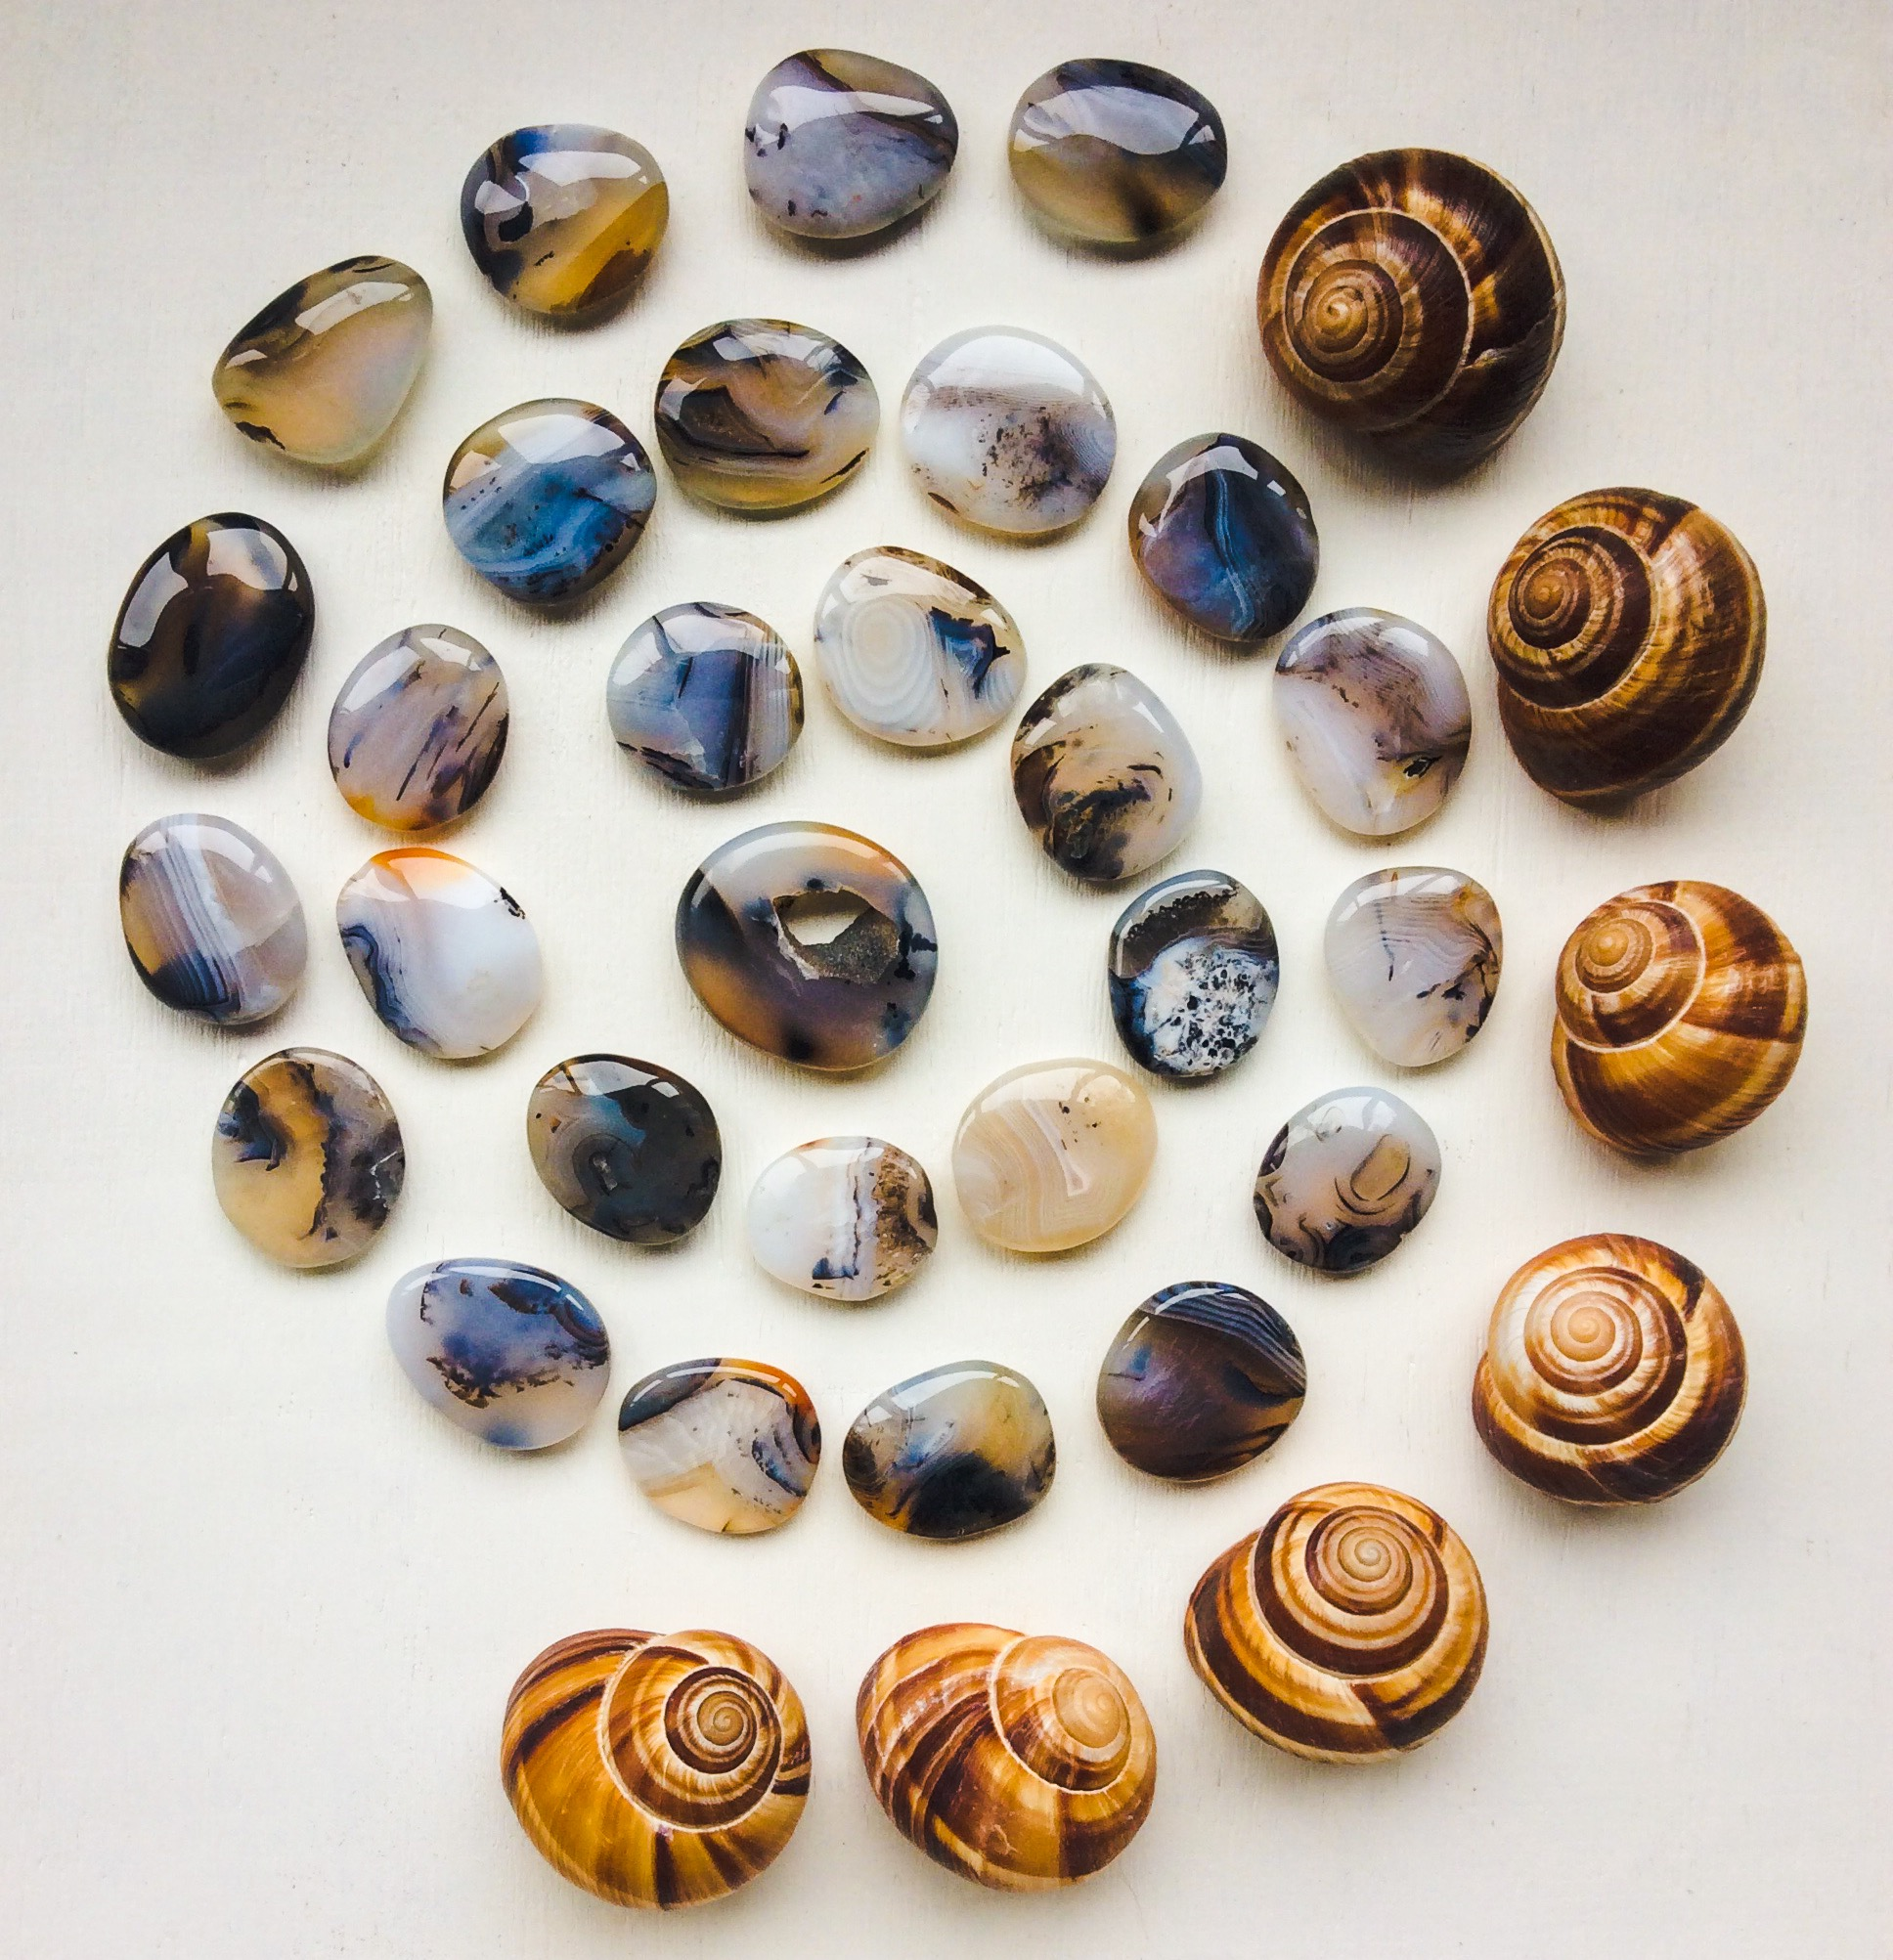 Montana Agate and Escargot Snails